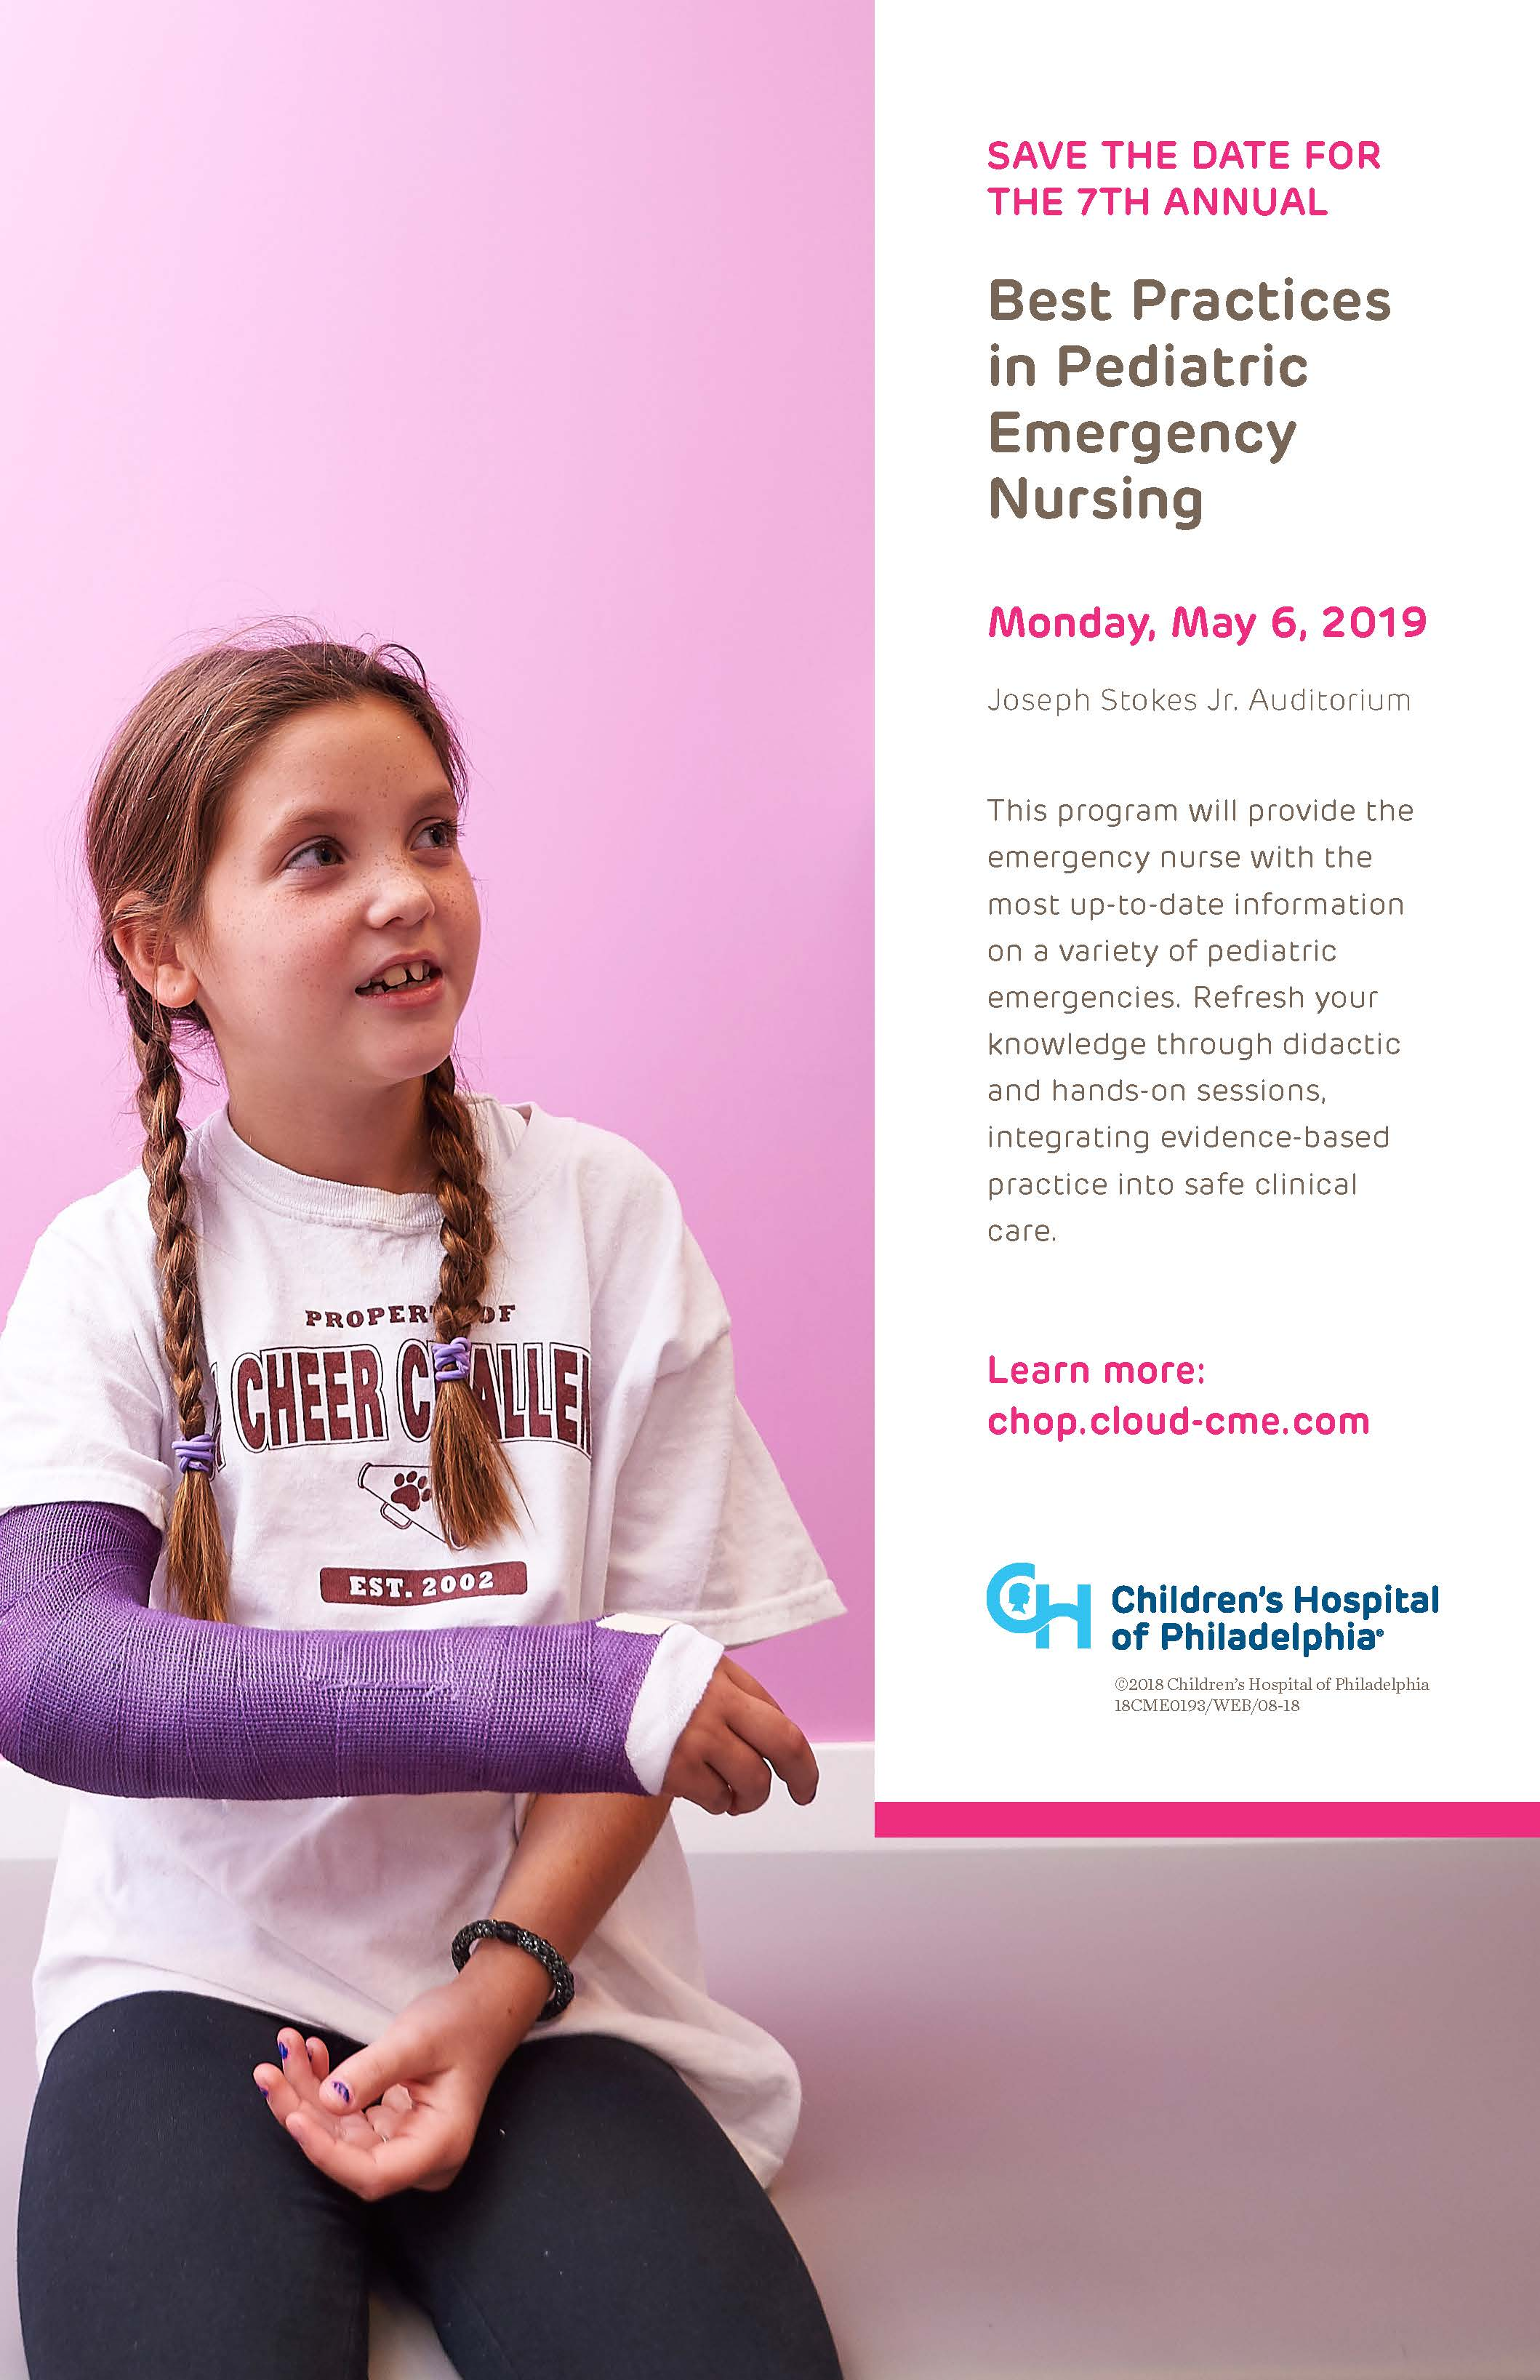 7th Annual Best Practices in Pediatric Emergency Nursing Banner